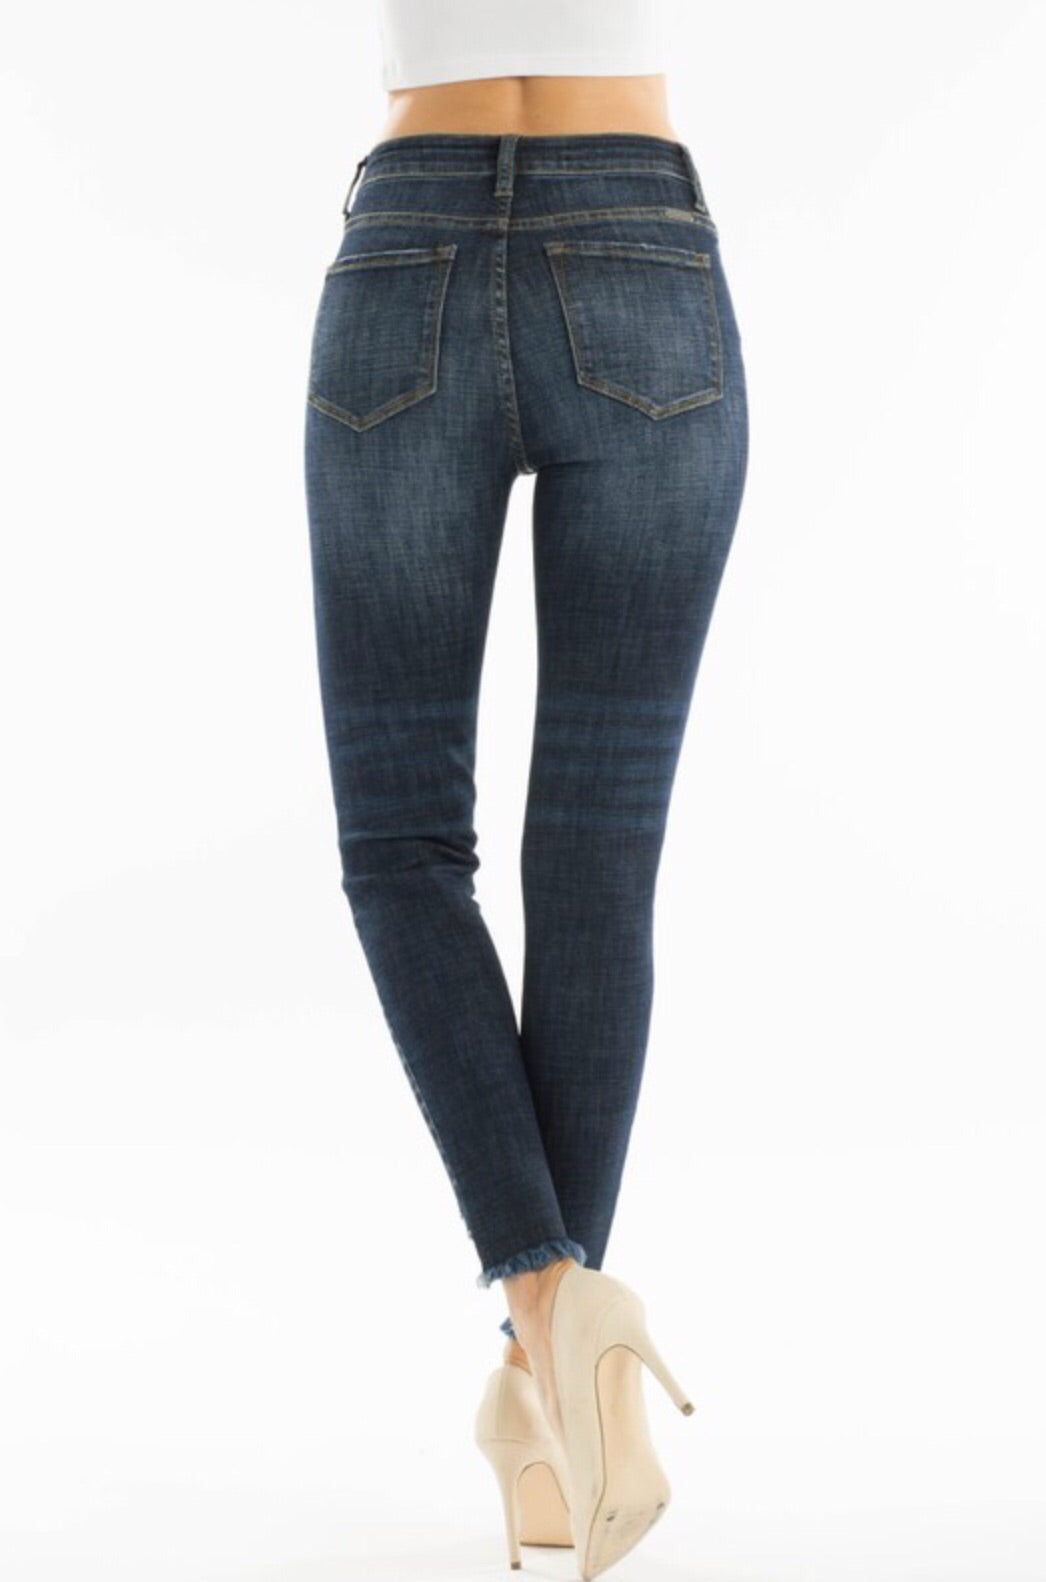 Odell High Rise Denim in Dark Wash